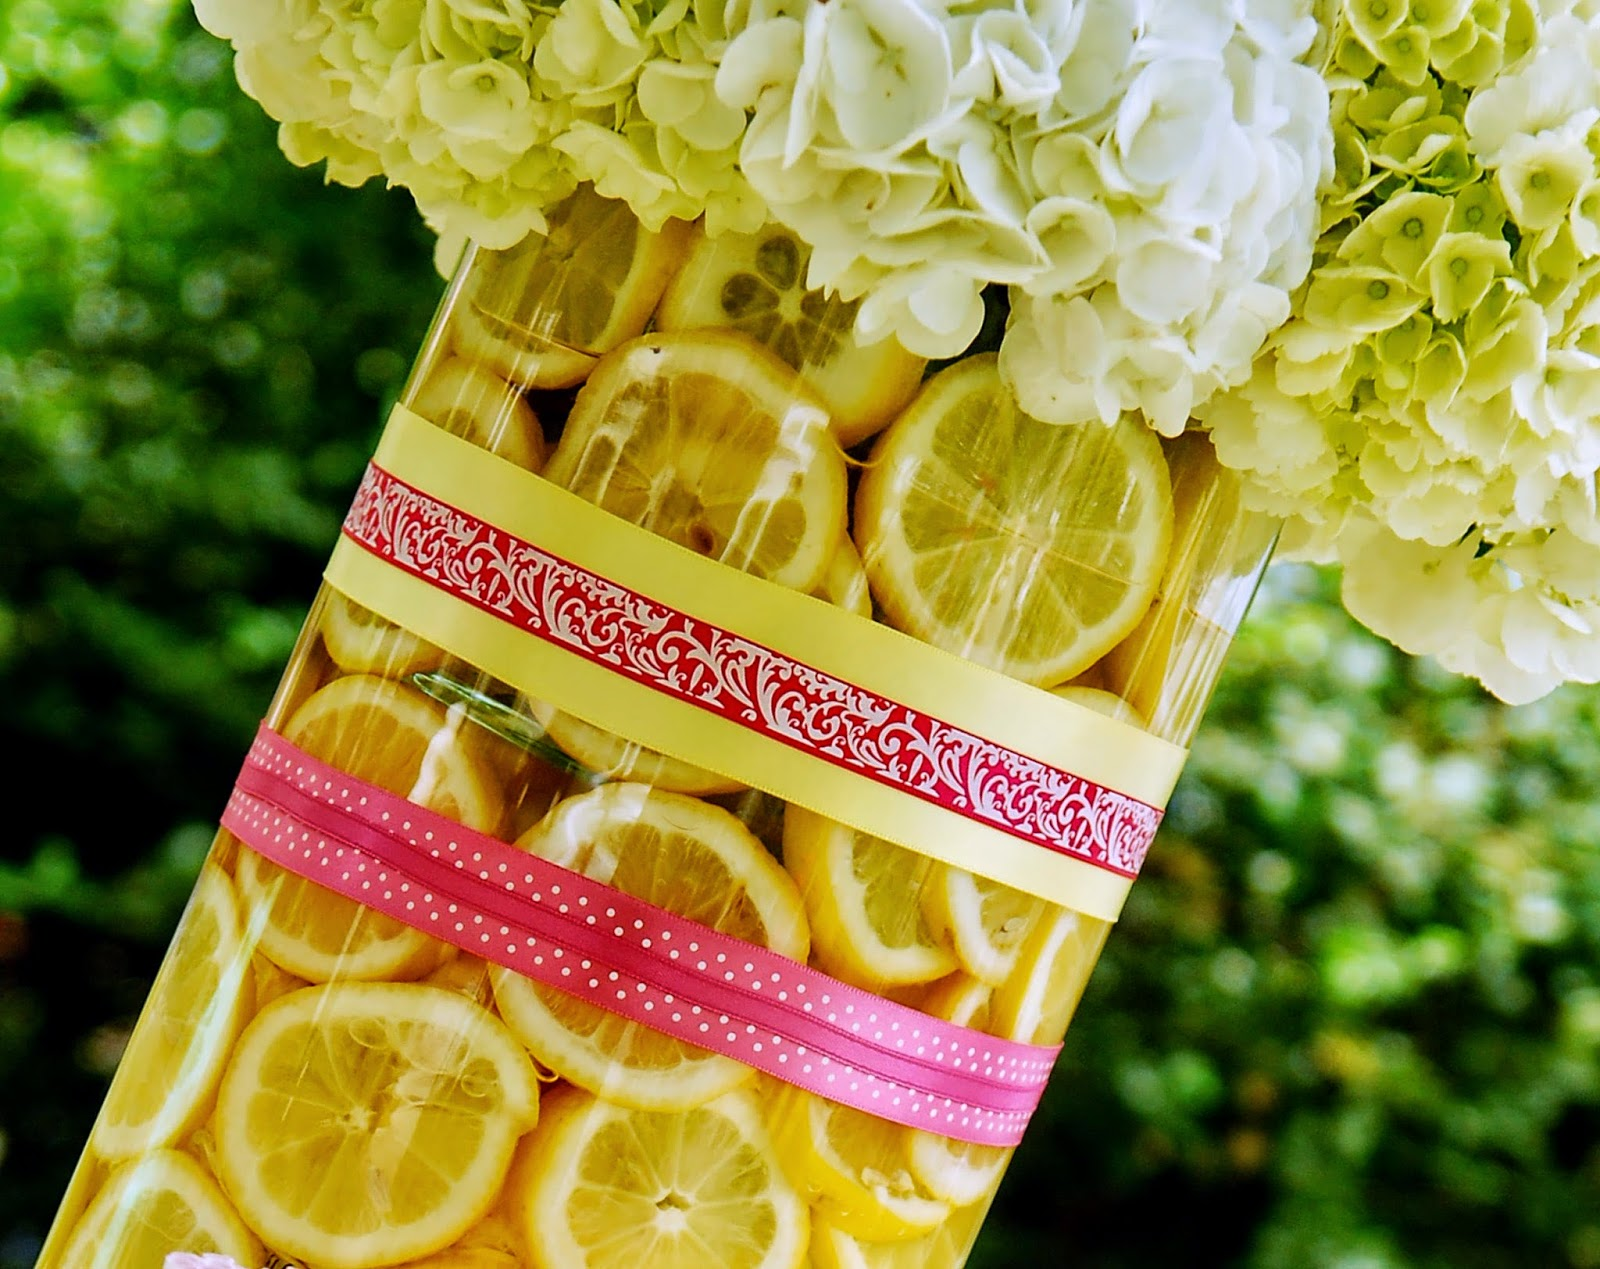 http://www.partyboxdesign.com/pages/gallery.htm